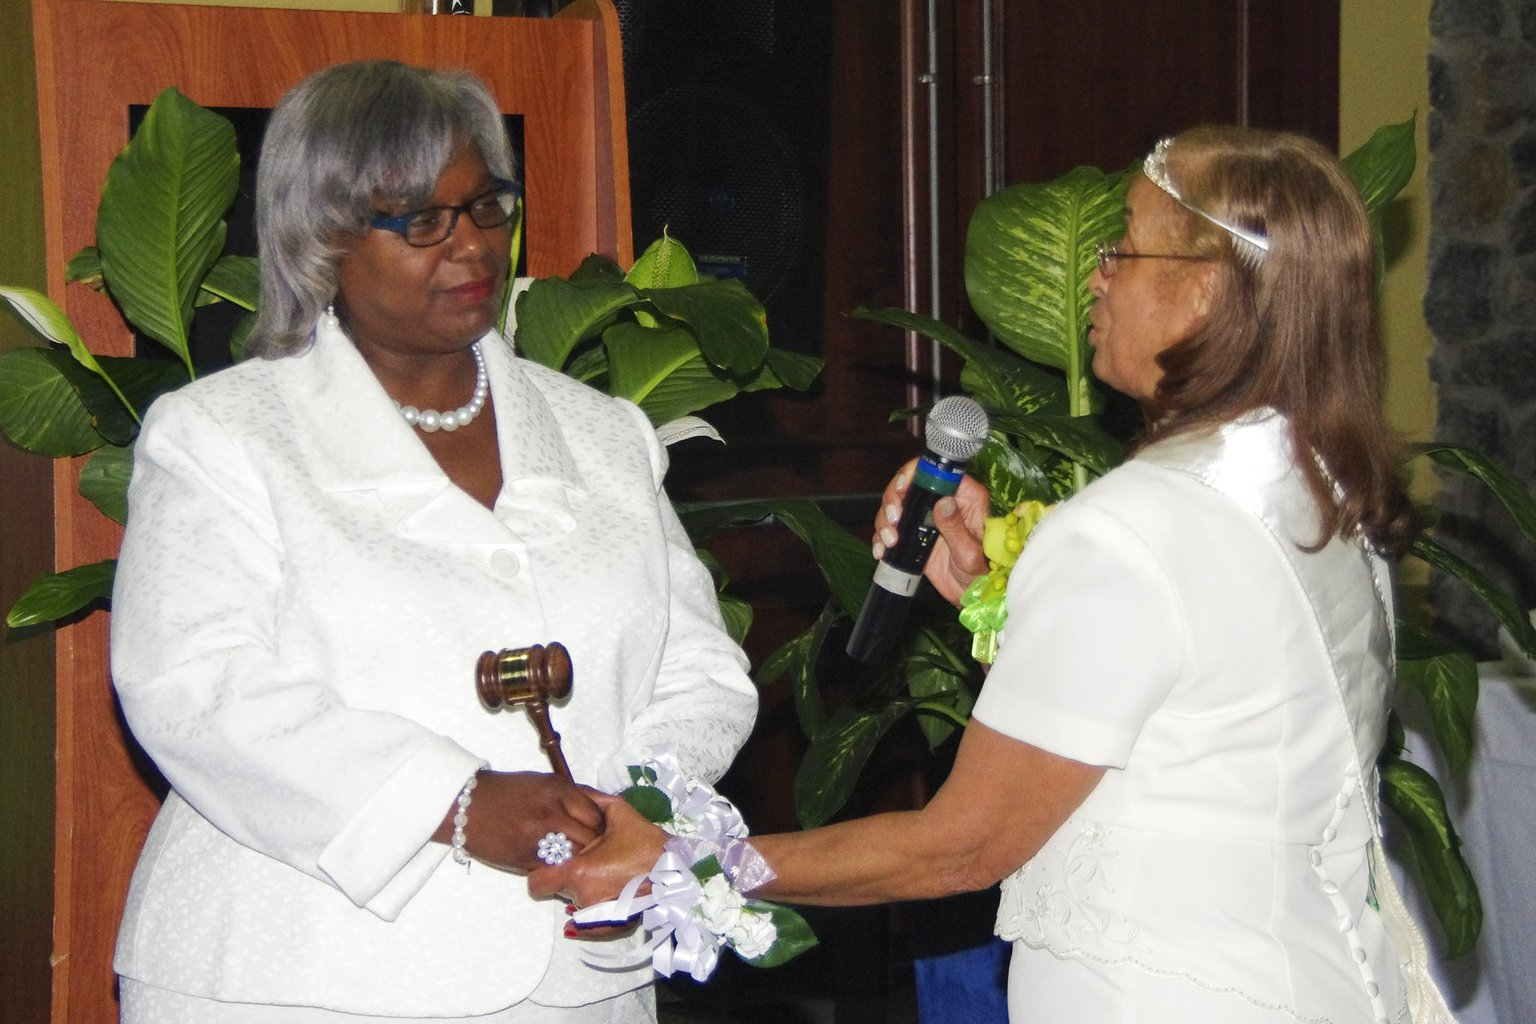 Stephanie Dilworth, left, is installed by outgoing Iota Phi Lambda president Phyllis Shumate.